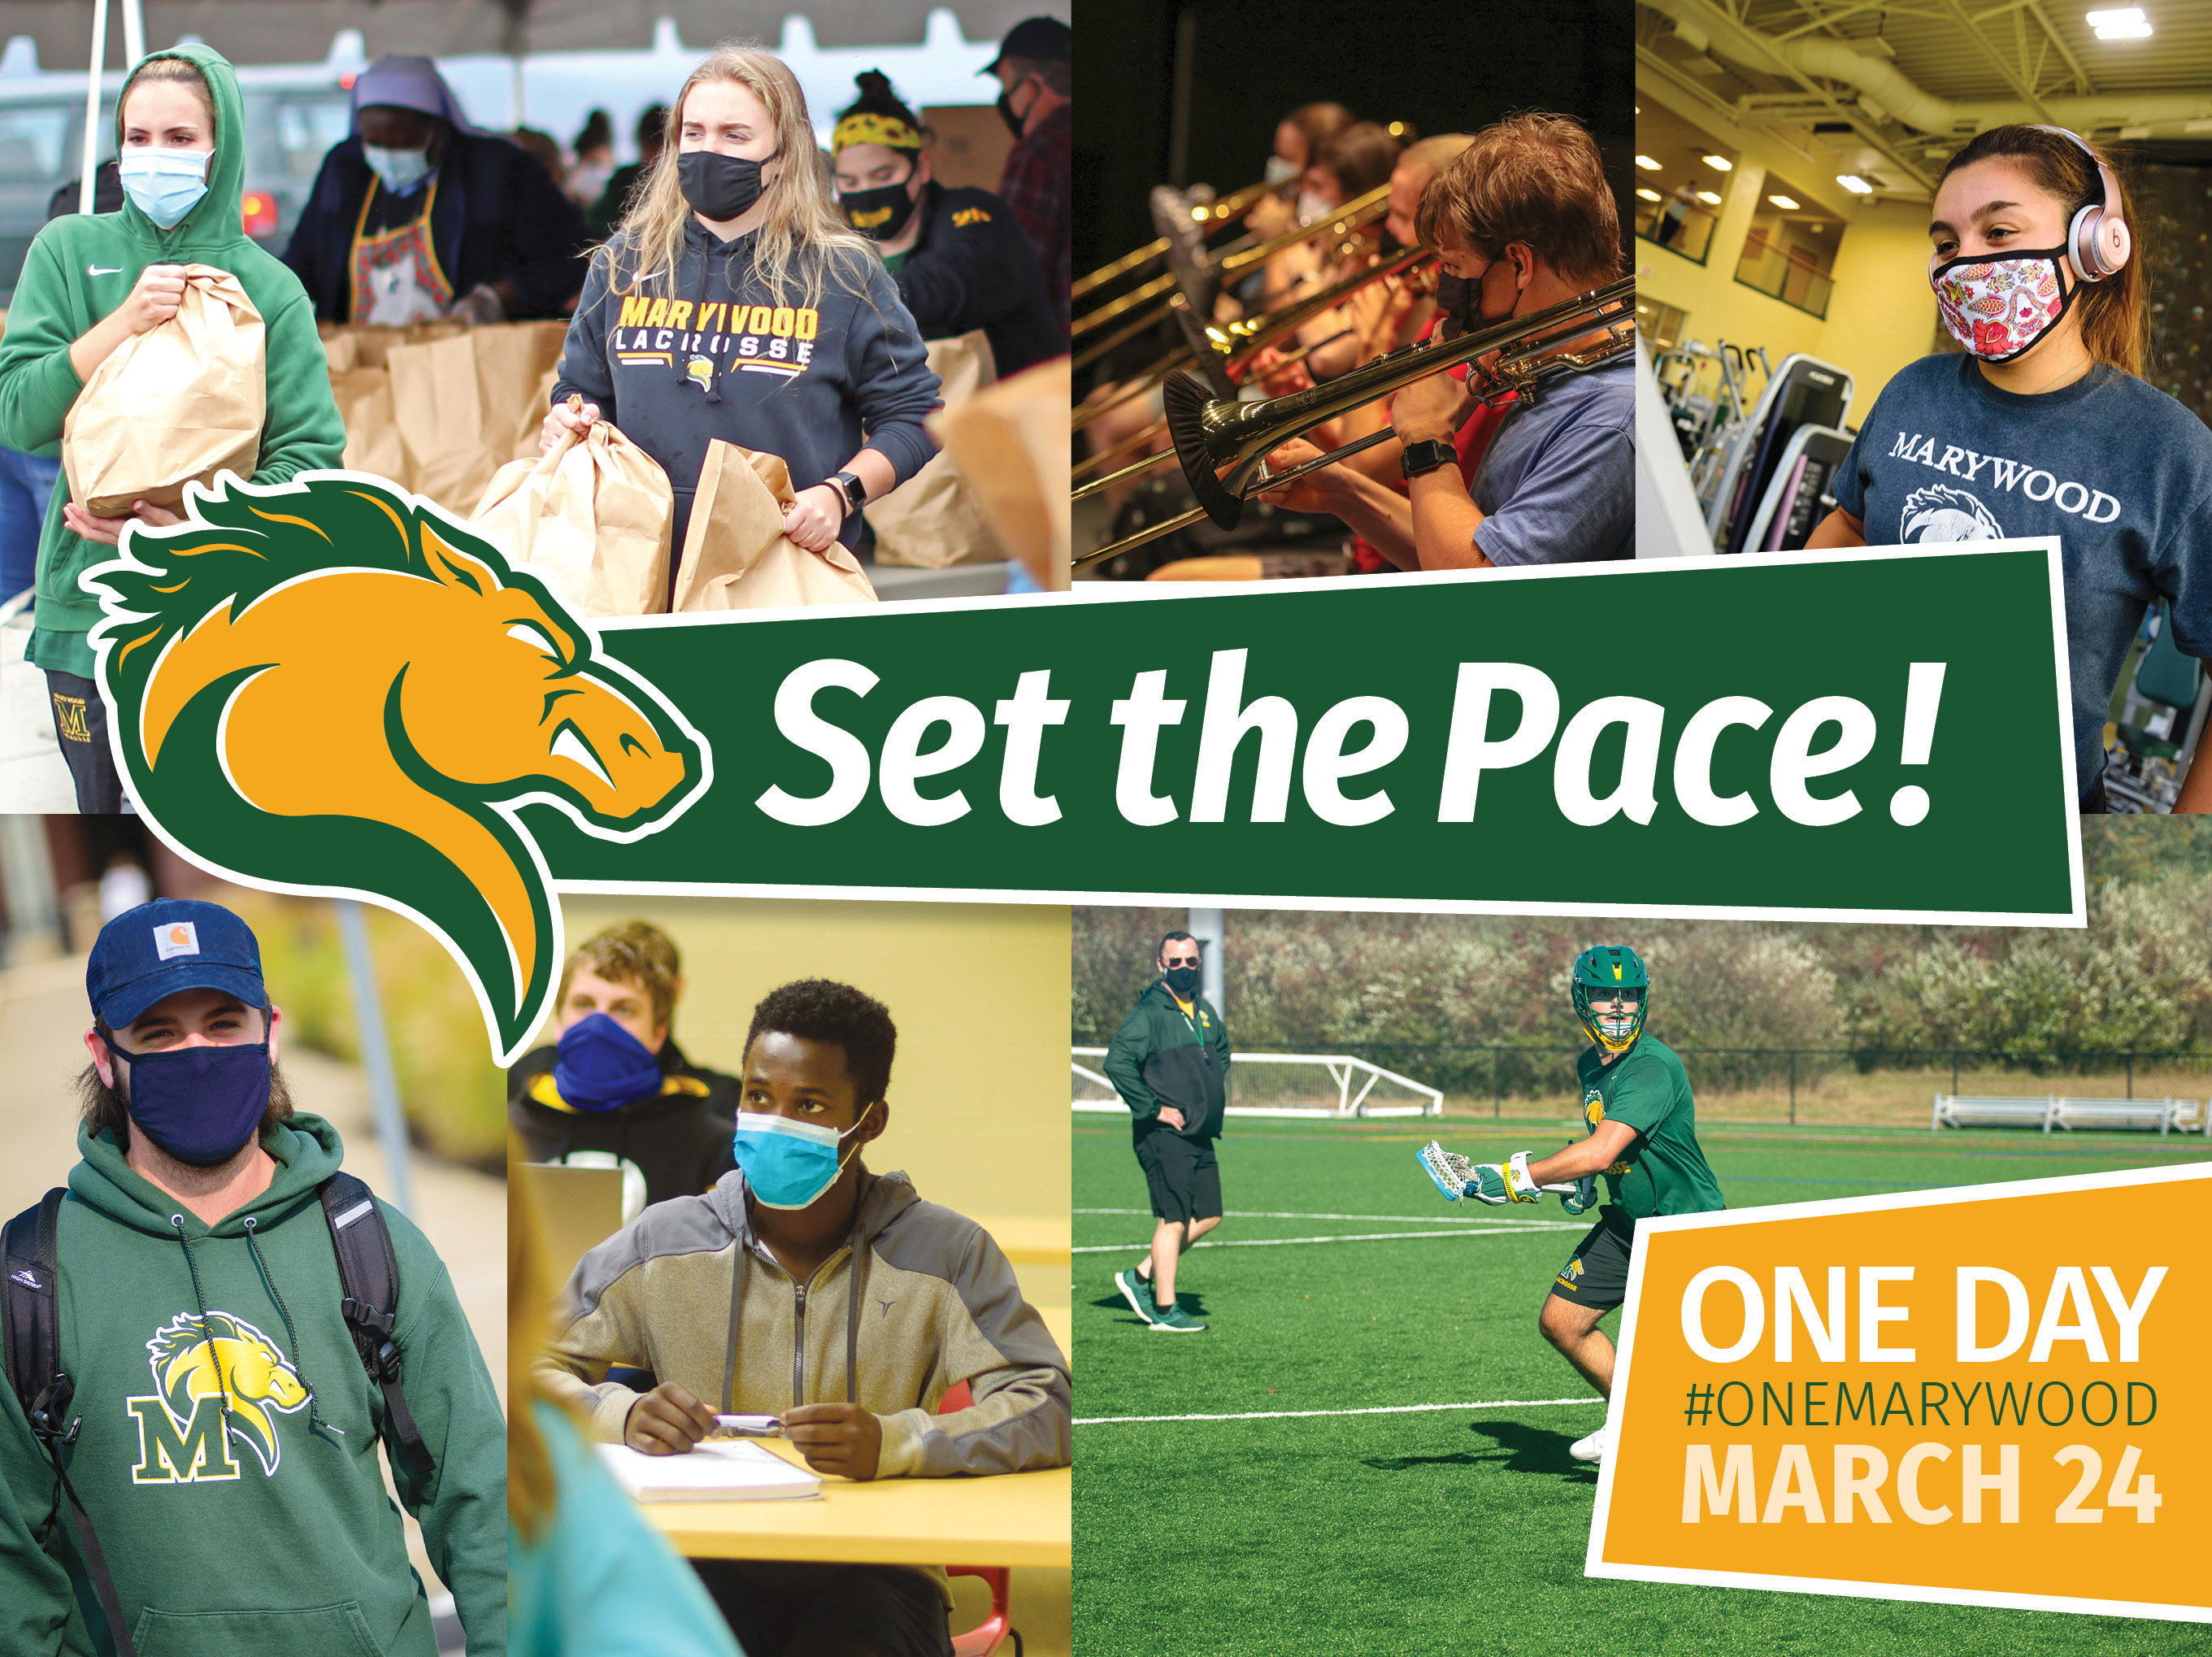 Marywood giving day image